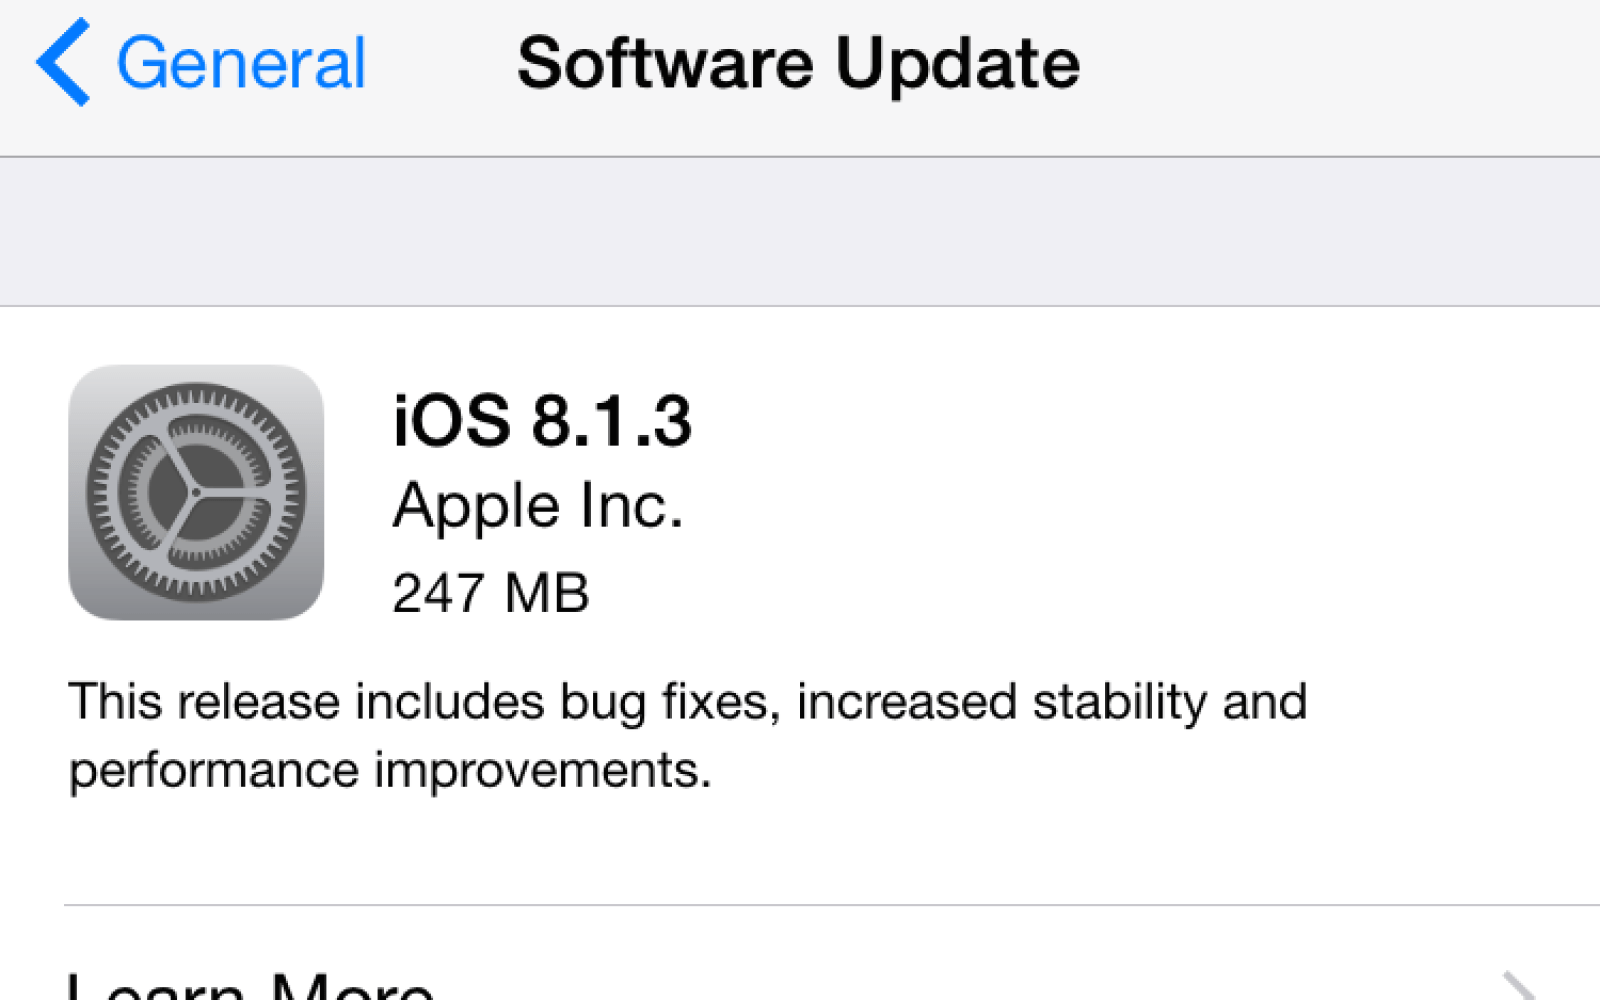 Apple releases iOS 8.1.3 software update w/ stability improvements, reduces space required to update